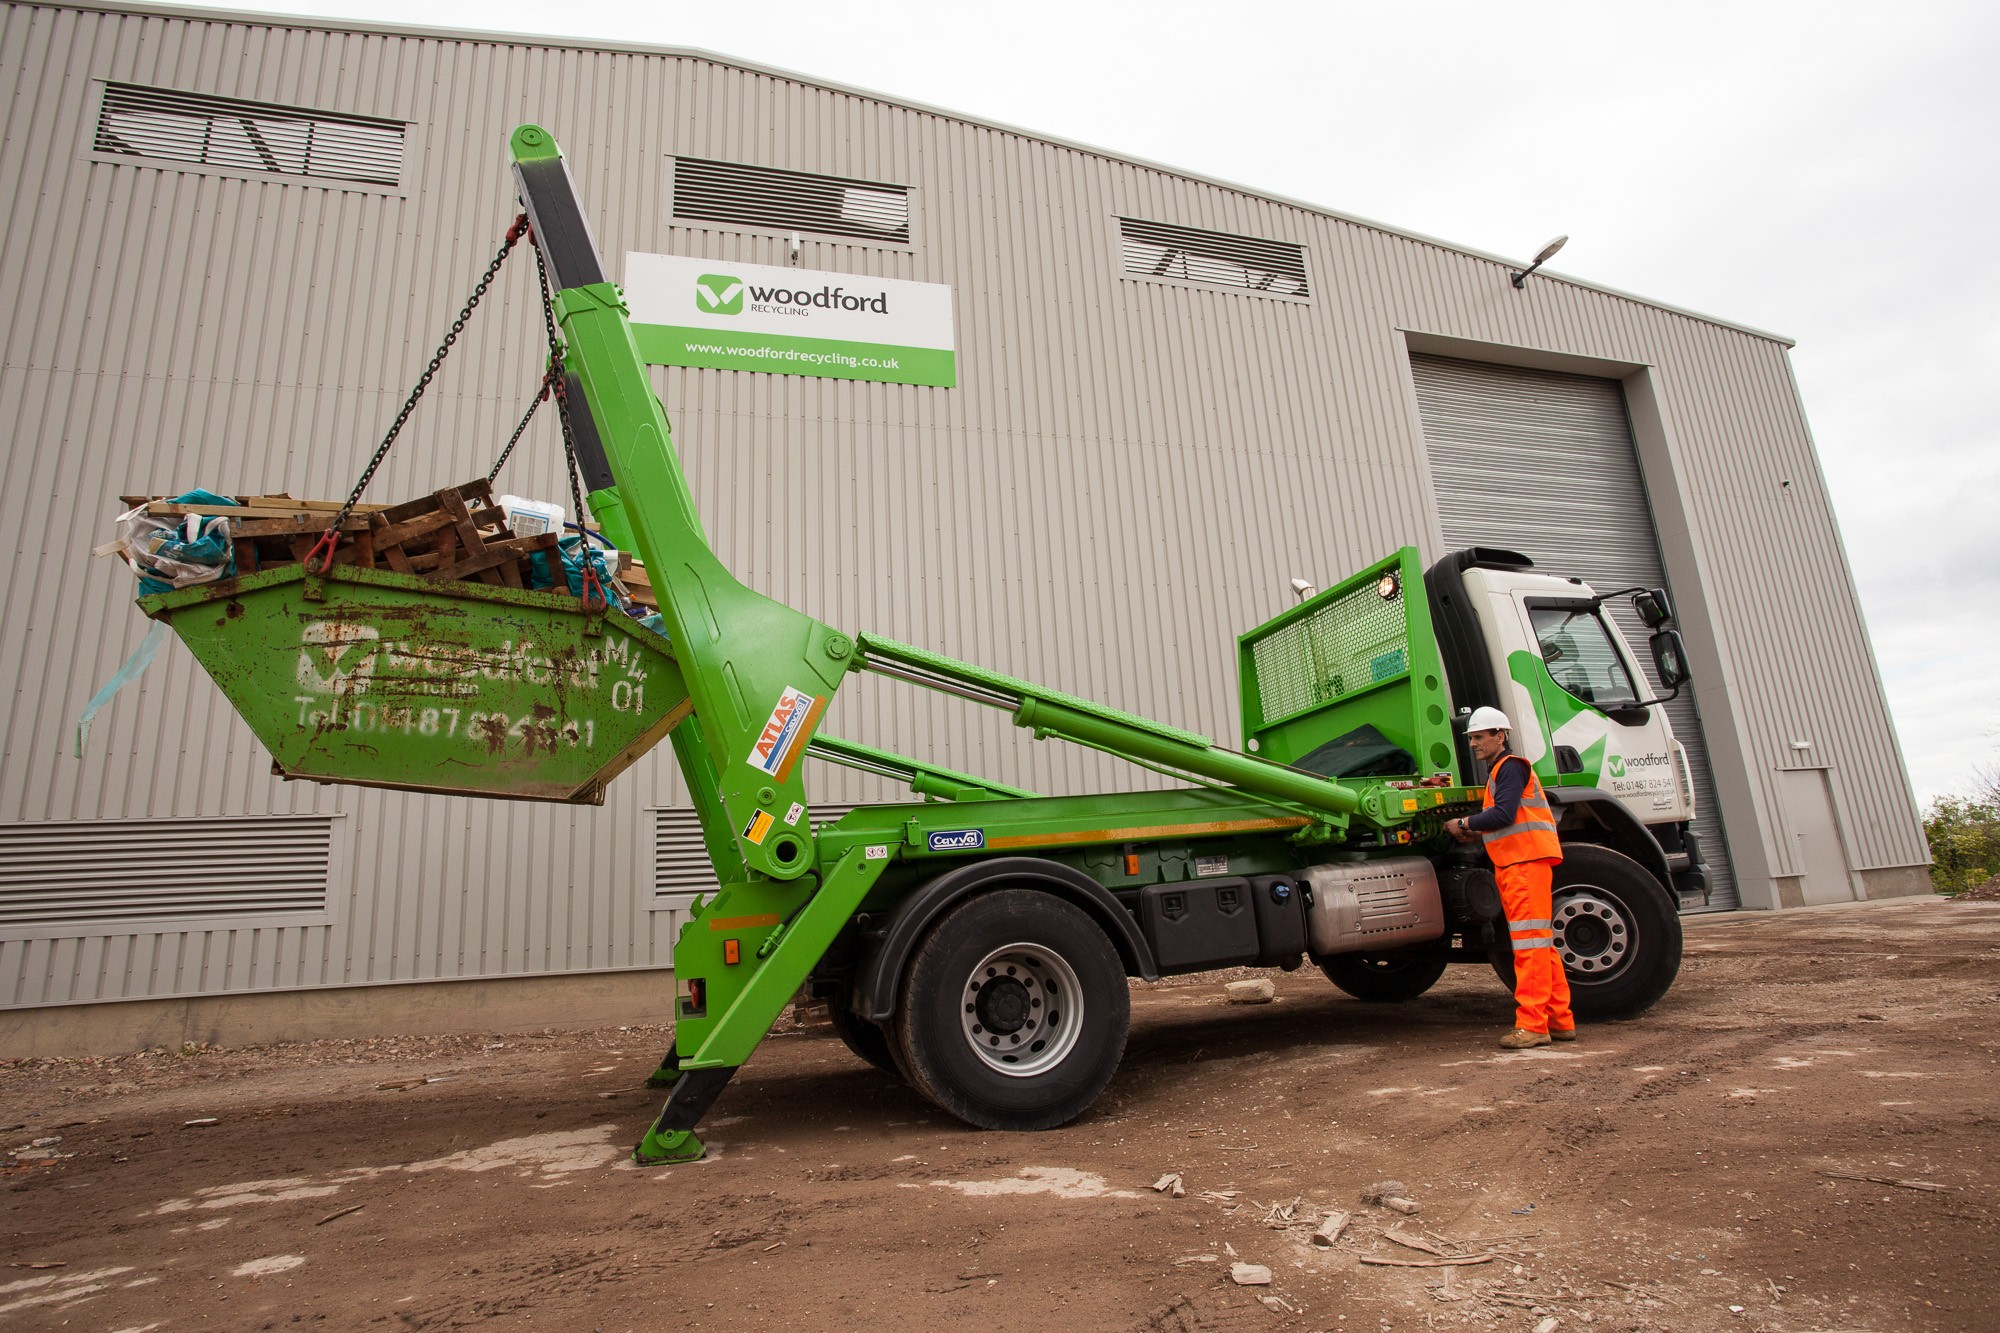 woodford-recycling-skip-hire-vehicle-3